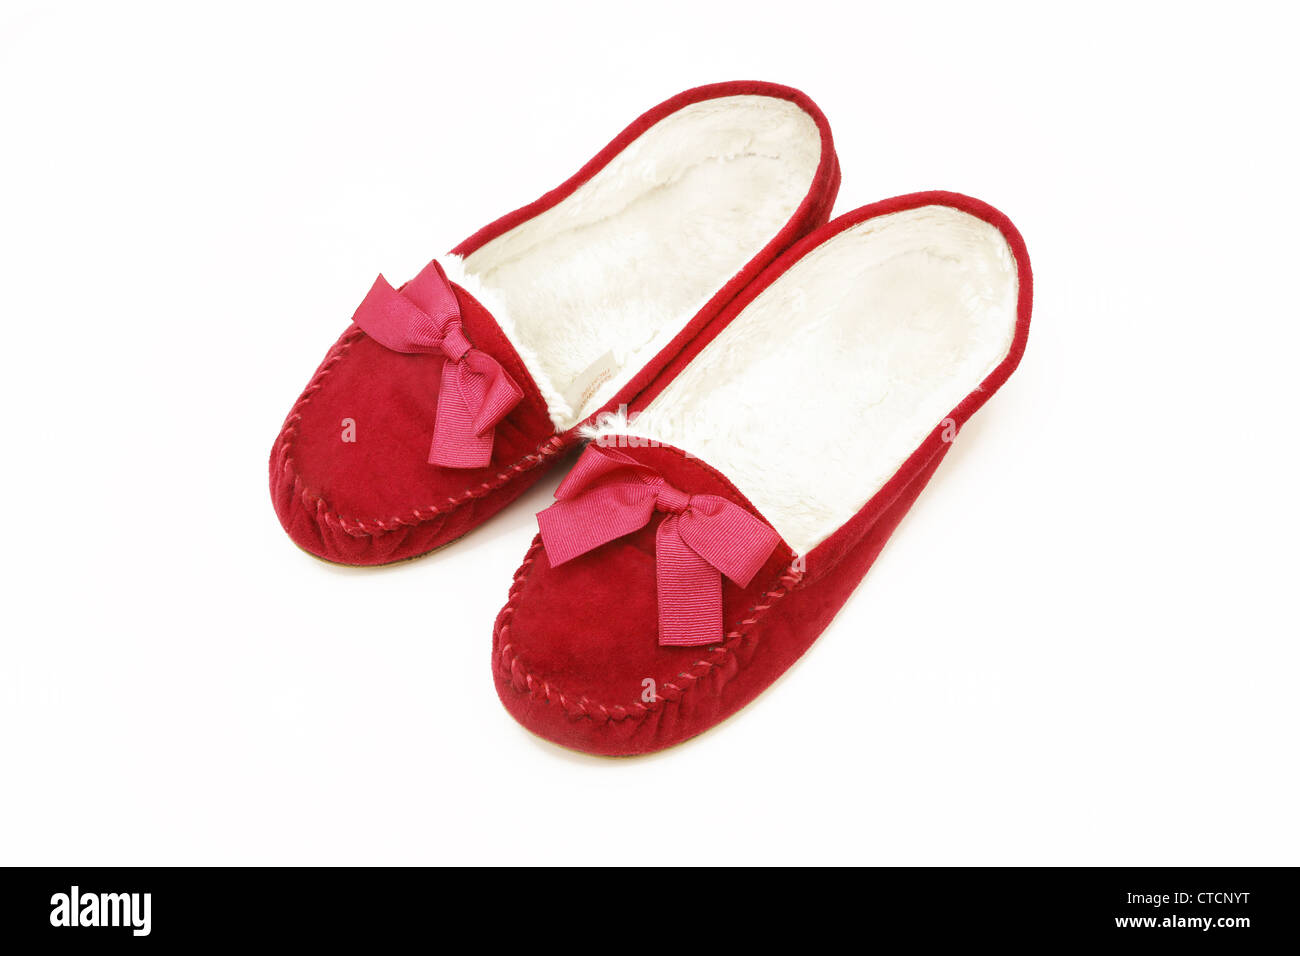 95beb4a2d81 Red Slippers With Bow Stock Photo  49453148 - Alamy